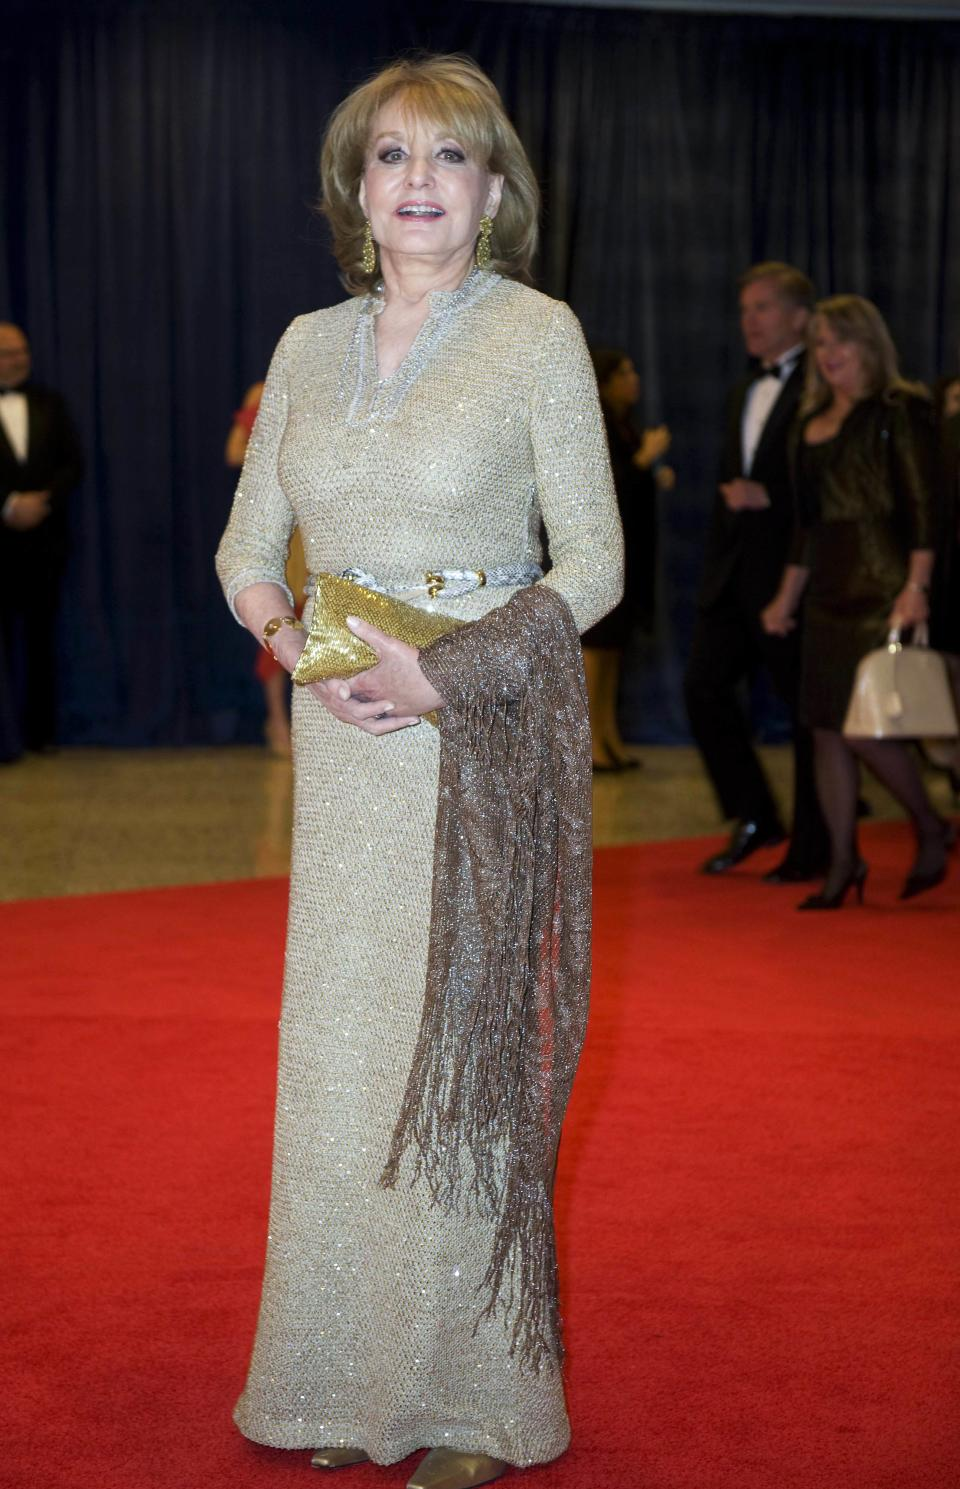 Barbara Walters arrives at the White House Correspondents' Association Dinner on Saturday, April 28, 2012 in Washington.  (AP Photo/Kevin Wolf)